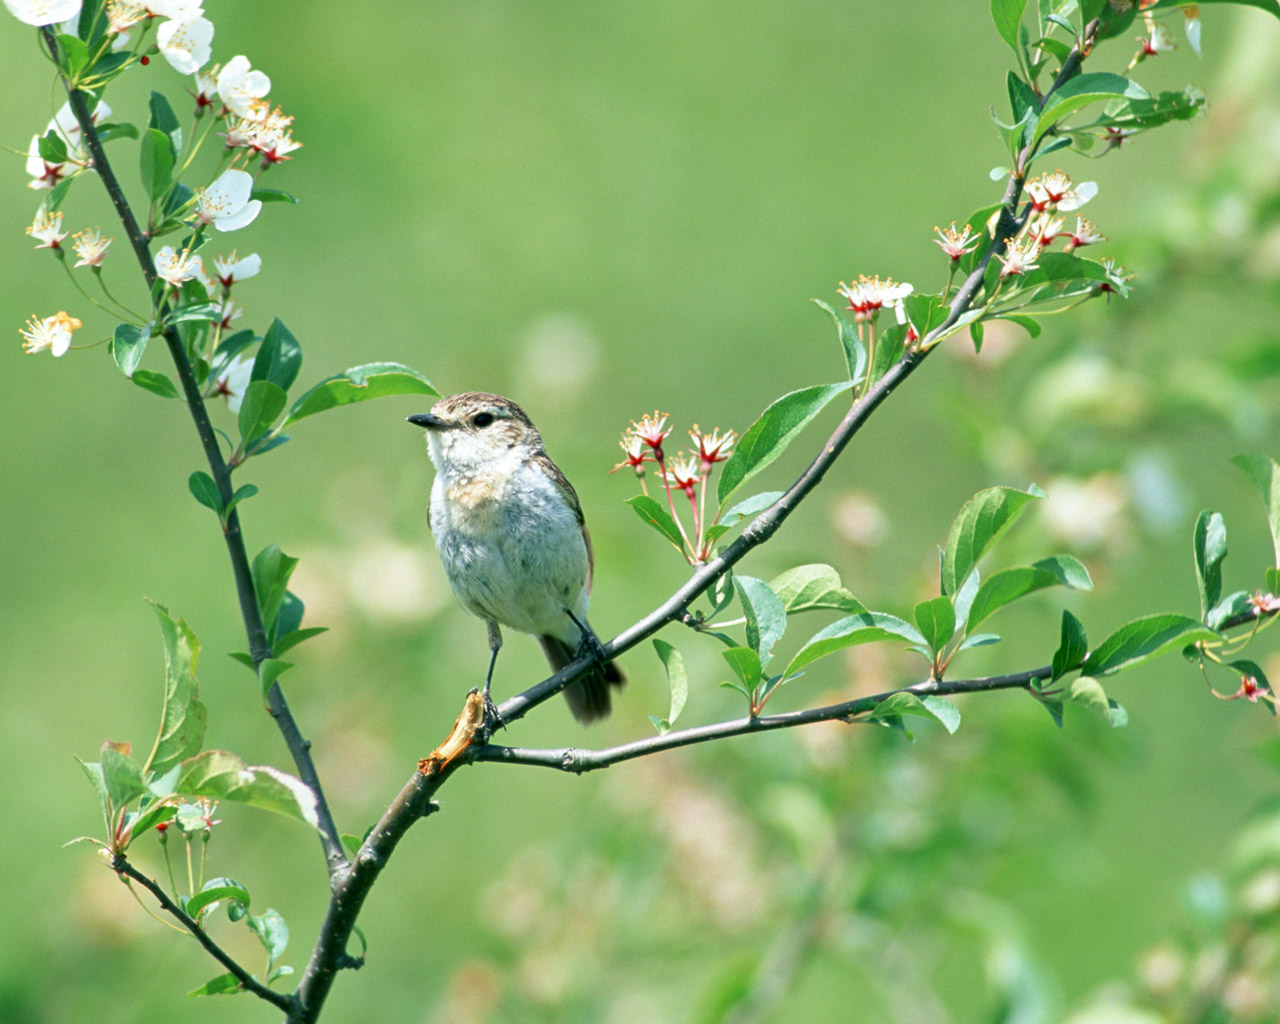 High-resolution pictures of birds 5568